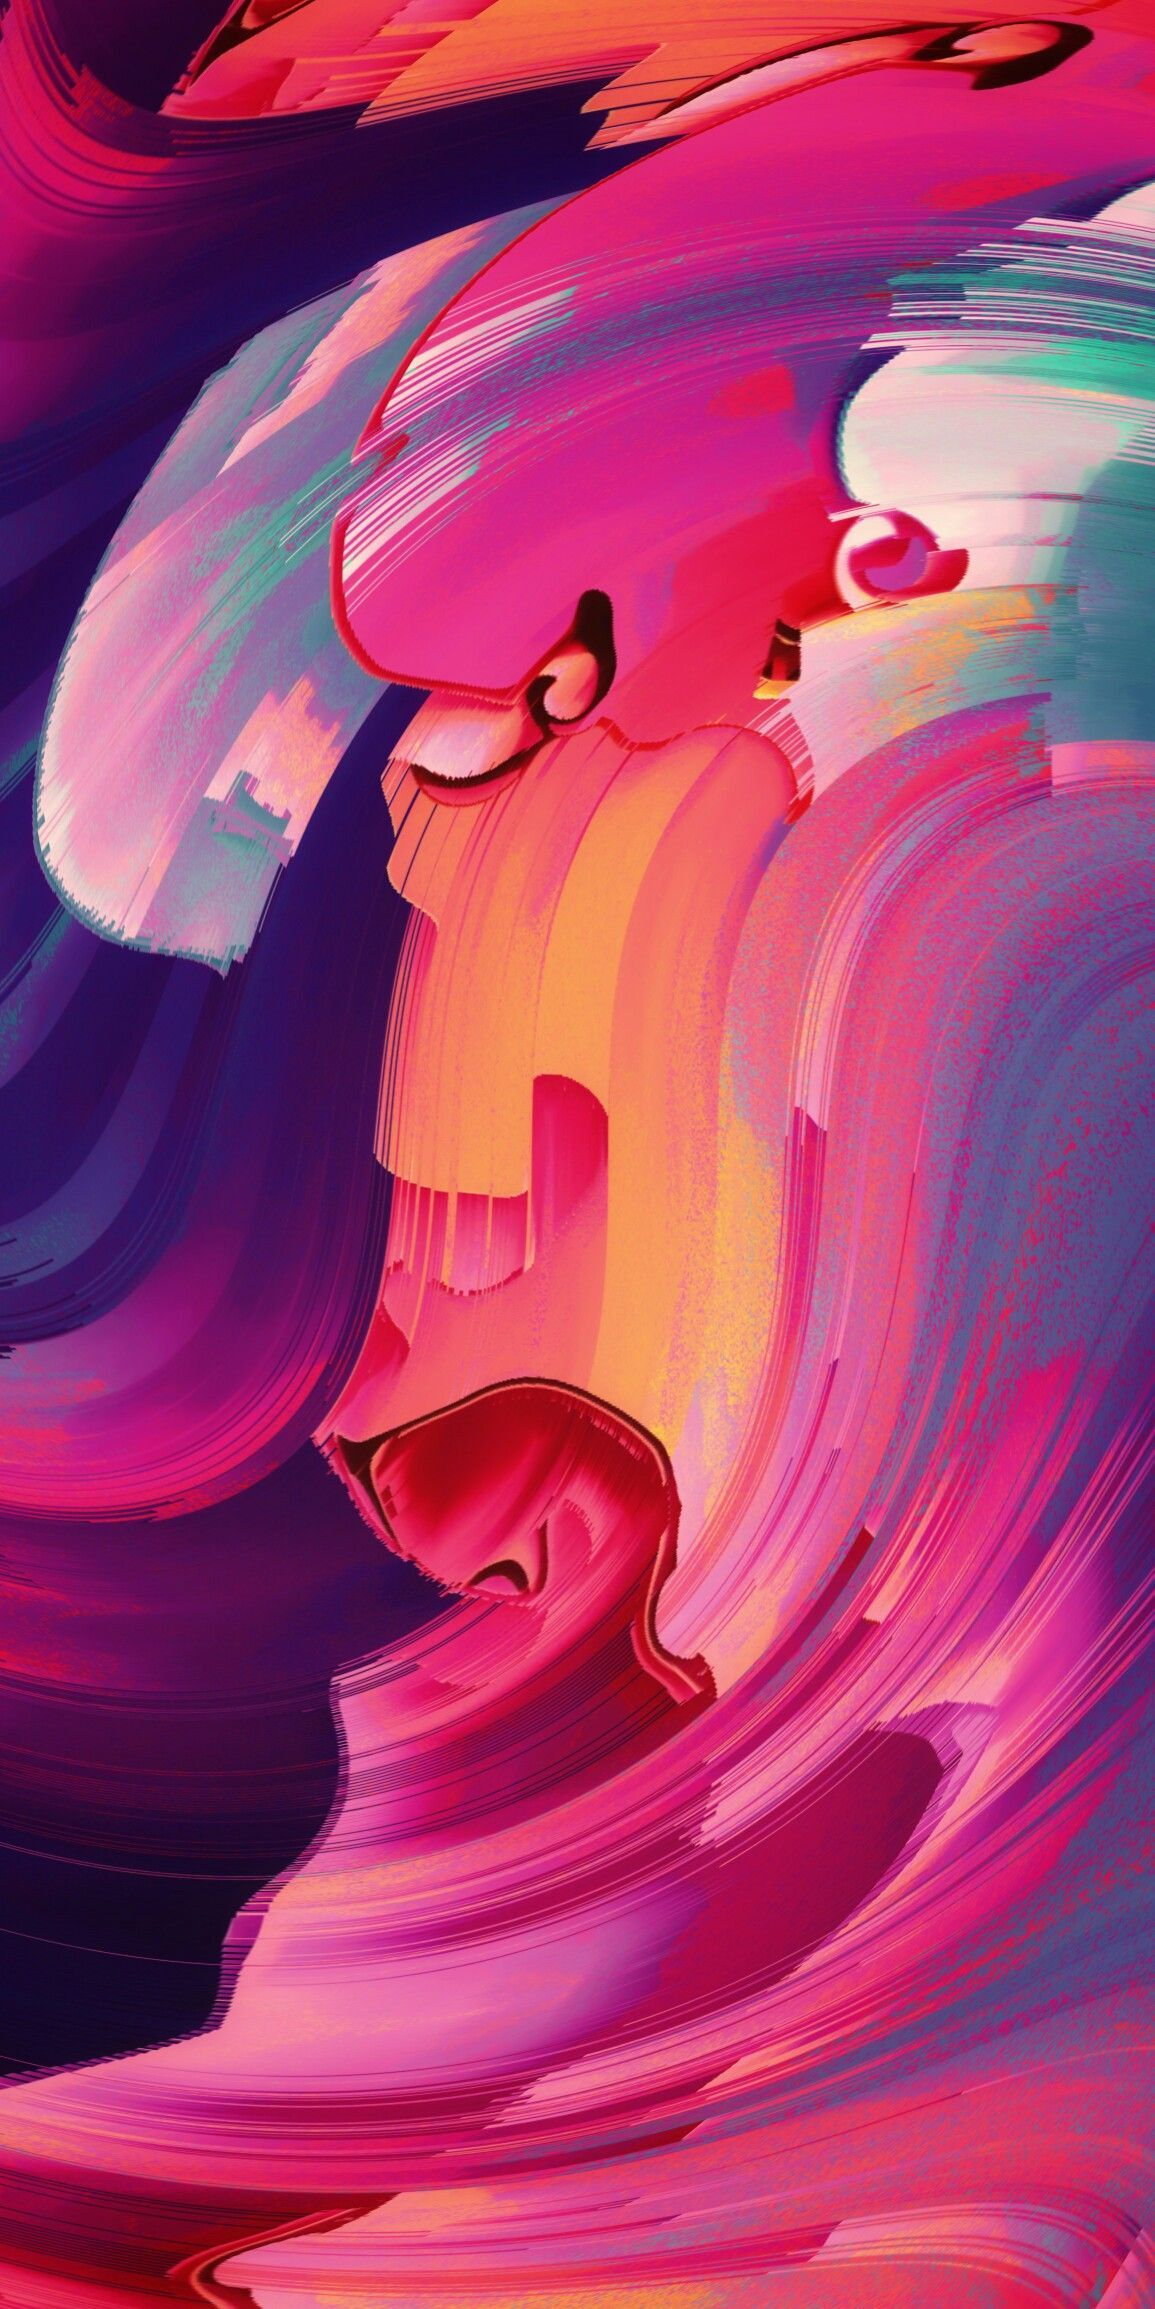 Pin by Allie Aitken on Art Abstract wallpaper, Colorful